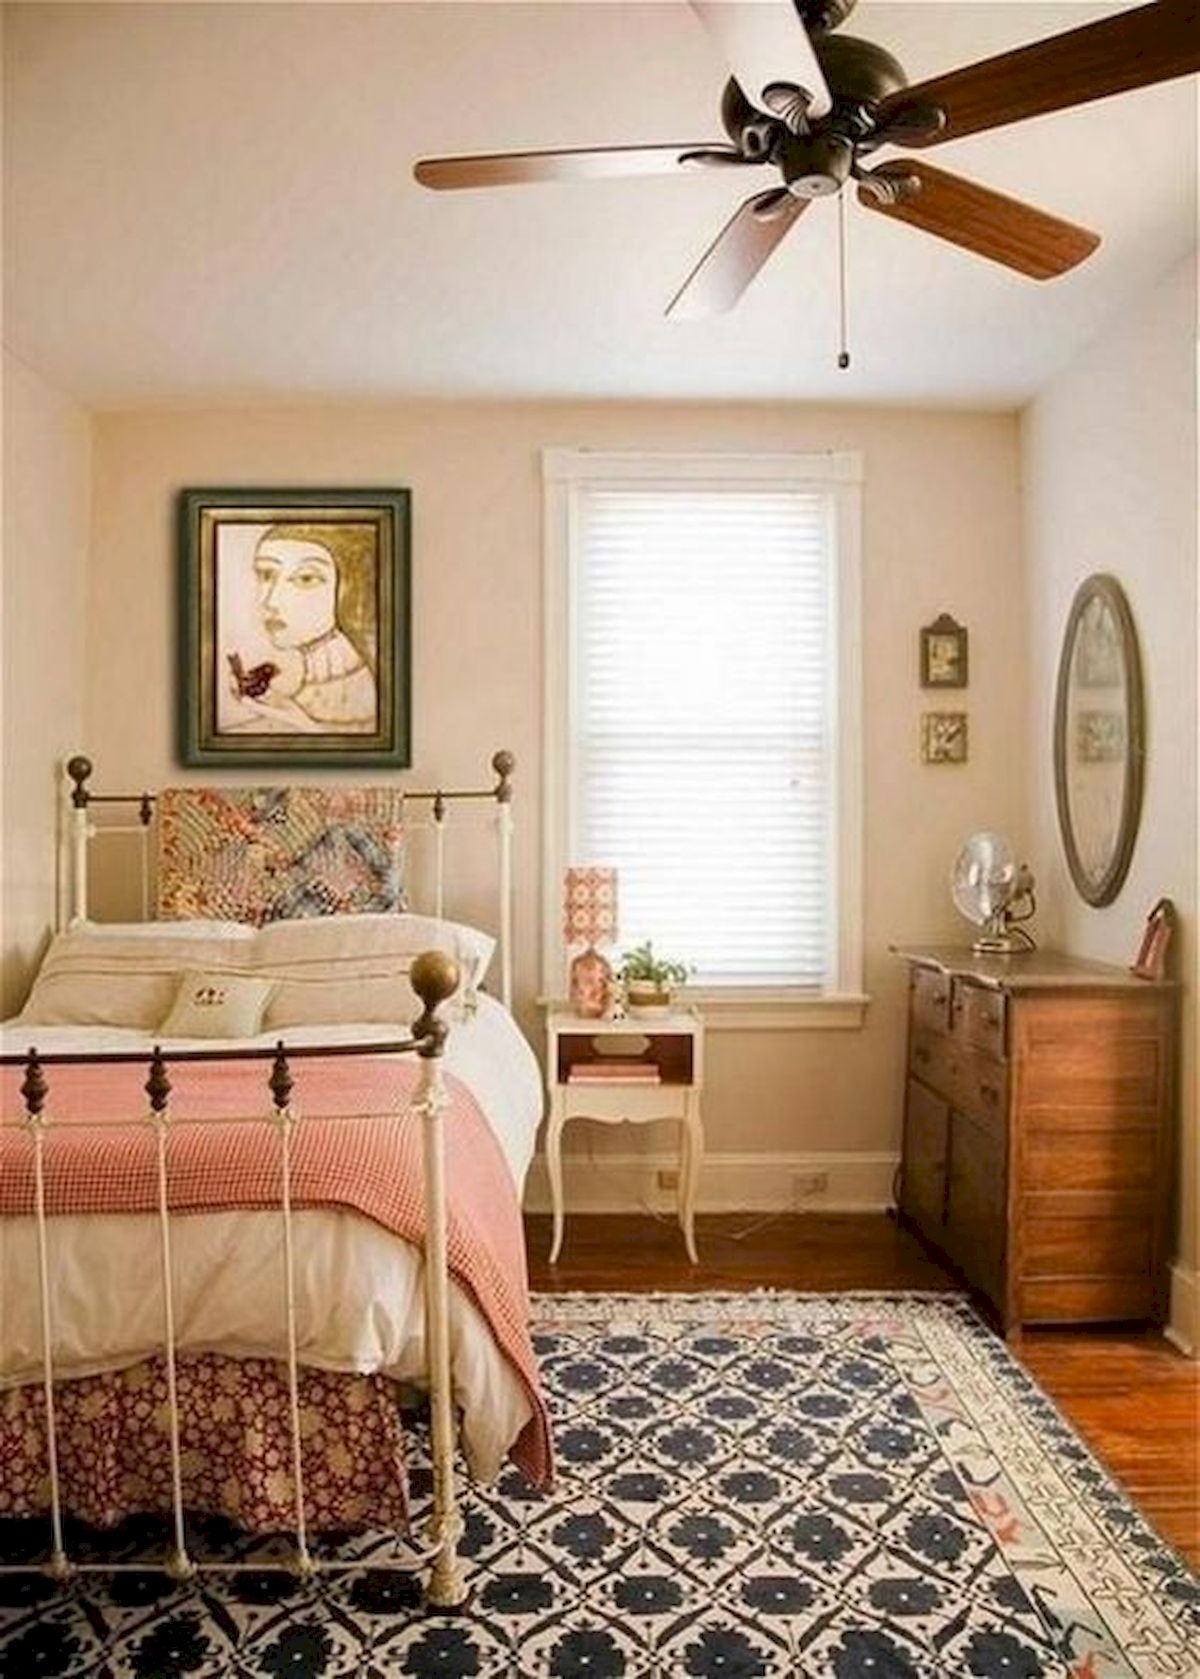 40 Cute Small Bedroom Design and Decor Ideas for Teenage Girl (23)